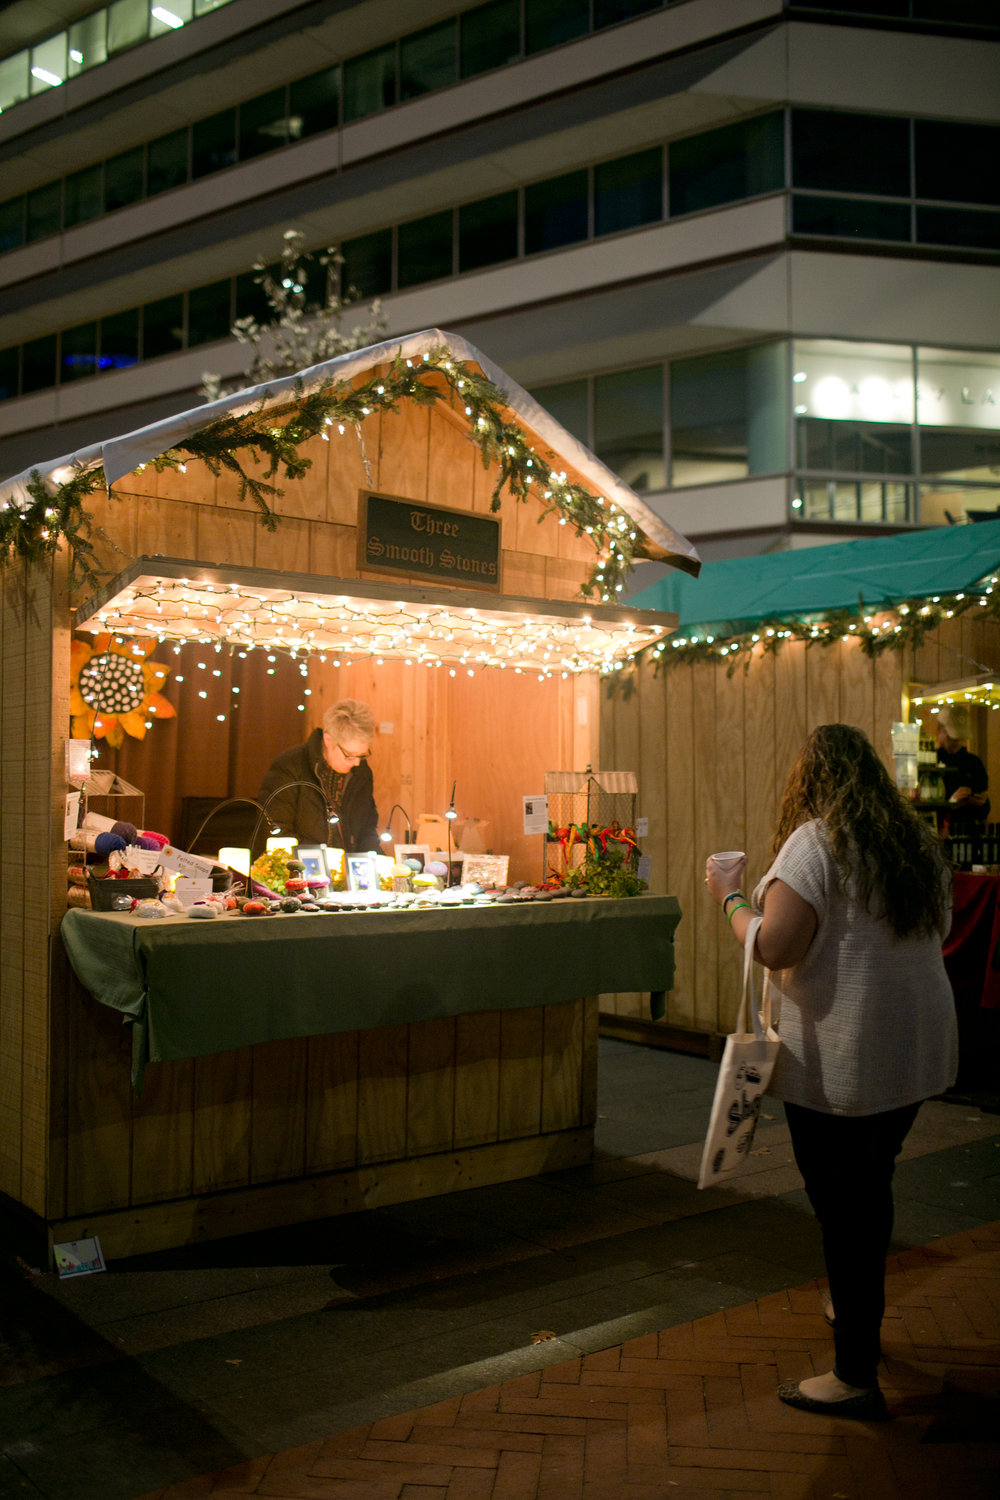 Visit Des Moines in December and experience a blend of European Christmas traditison at the DSM Christkindlmarket! Live music, hot drinks, snacks and food, and a kids tent make this an enjoyable event for the entire family. Make sure to bundle up--once the sun goes down, it gets cold.